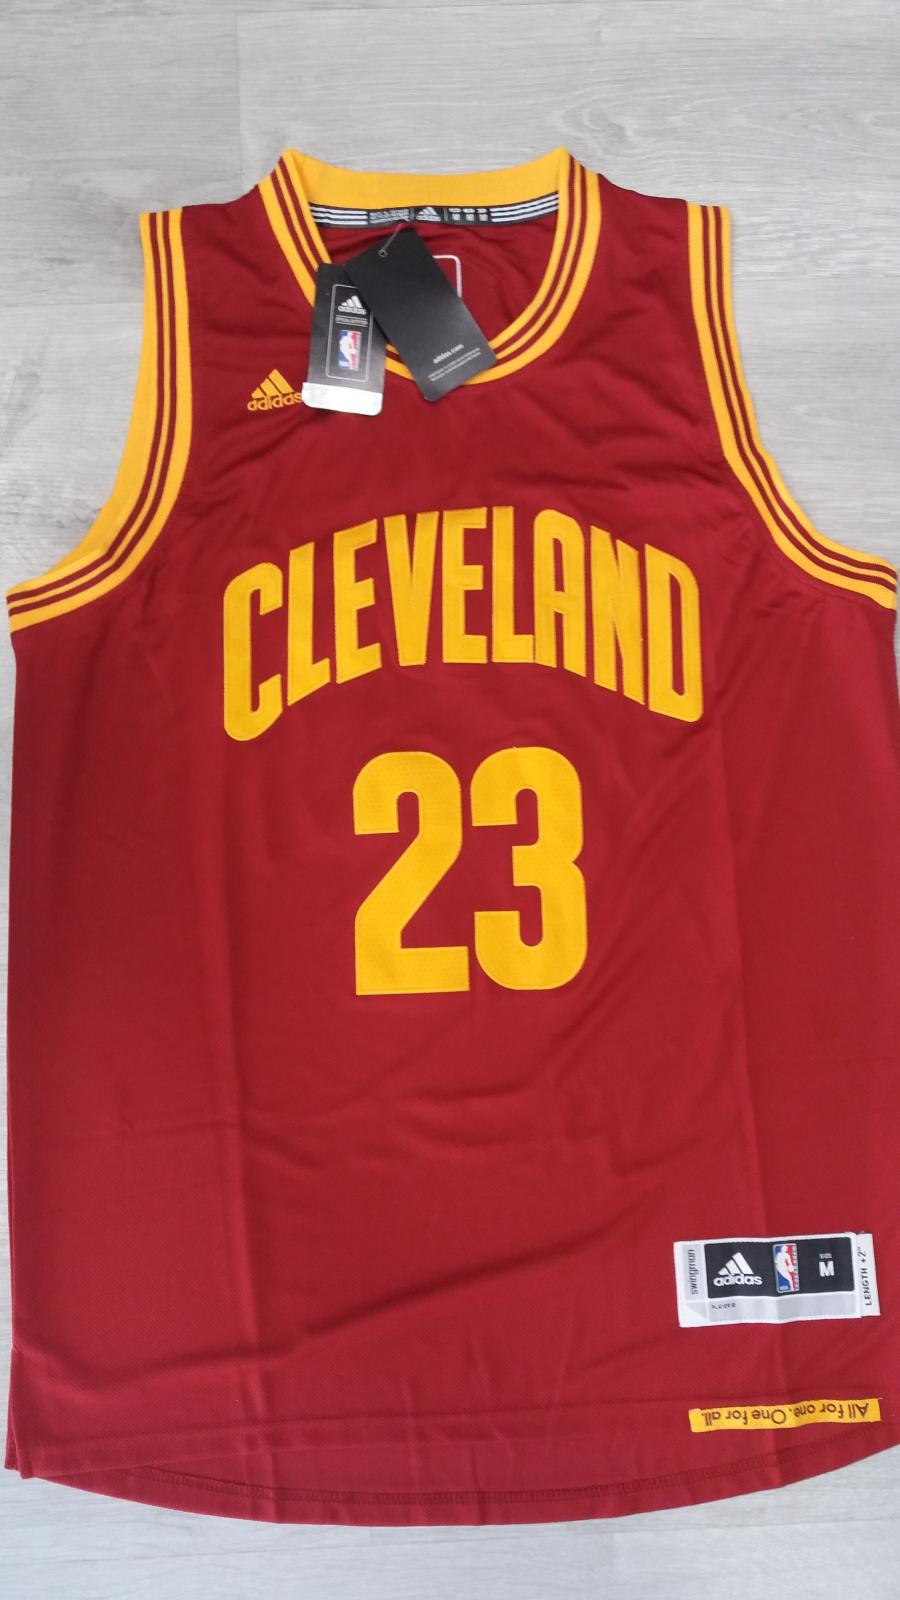 Cleveland Cavaliers #23 LeBron James 2016 The Finals Road Swingman NBA